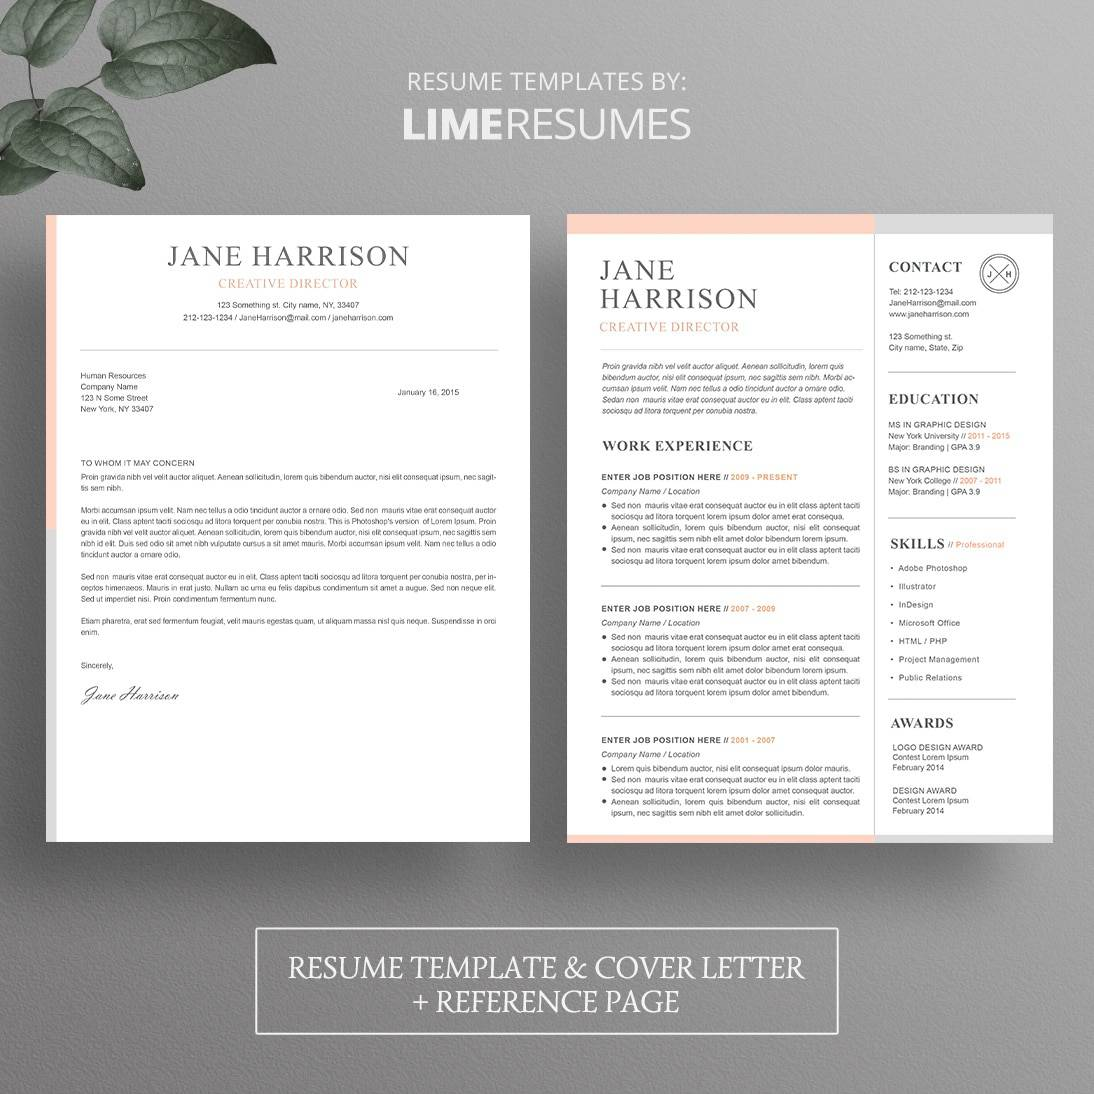 office 2007 resume templates download